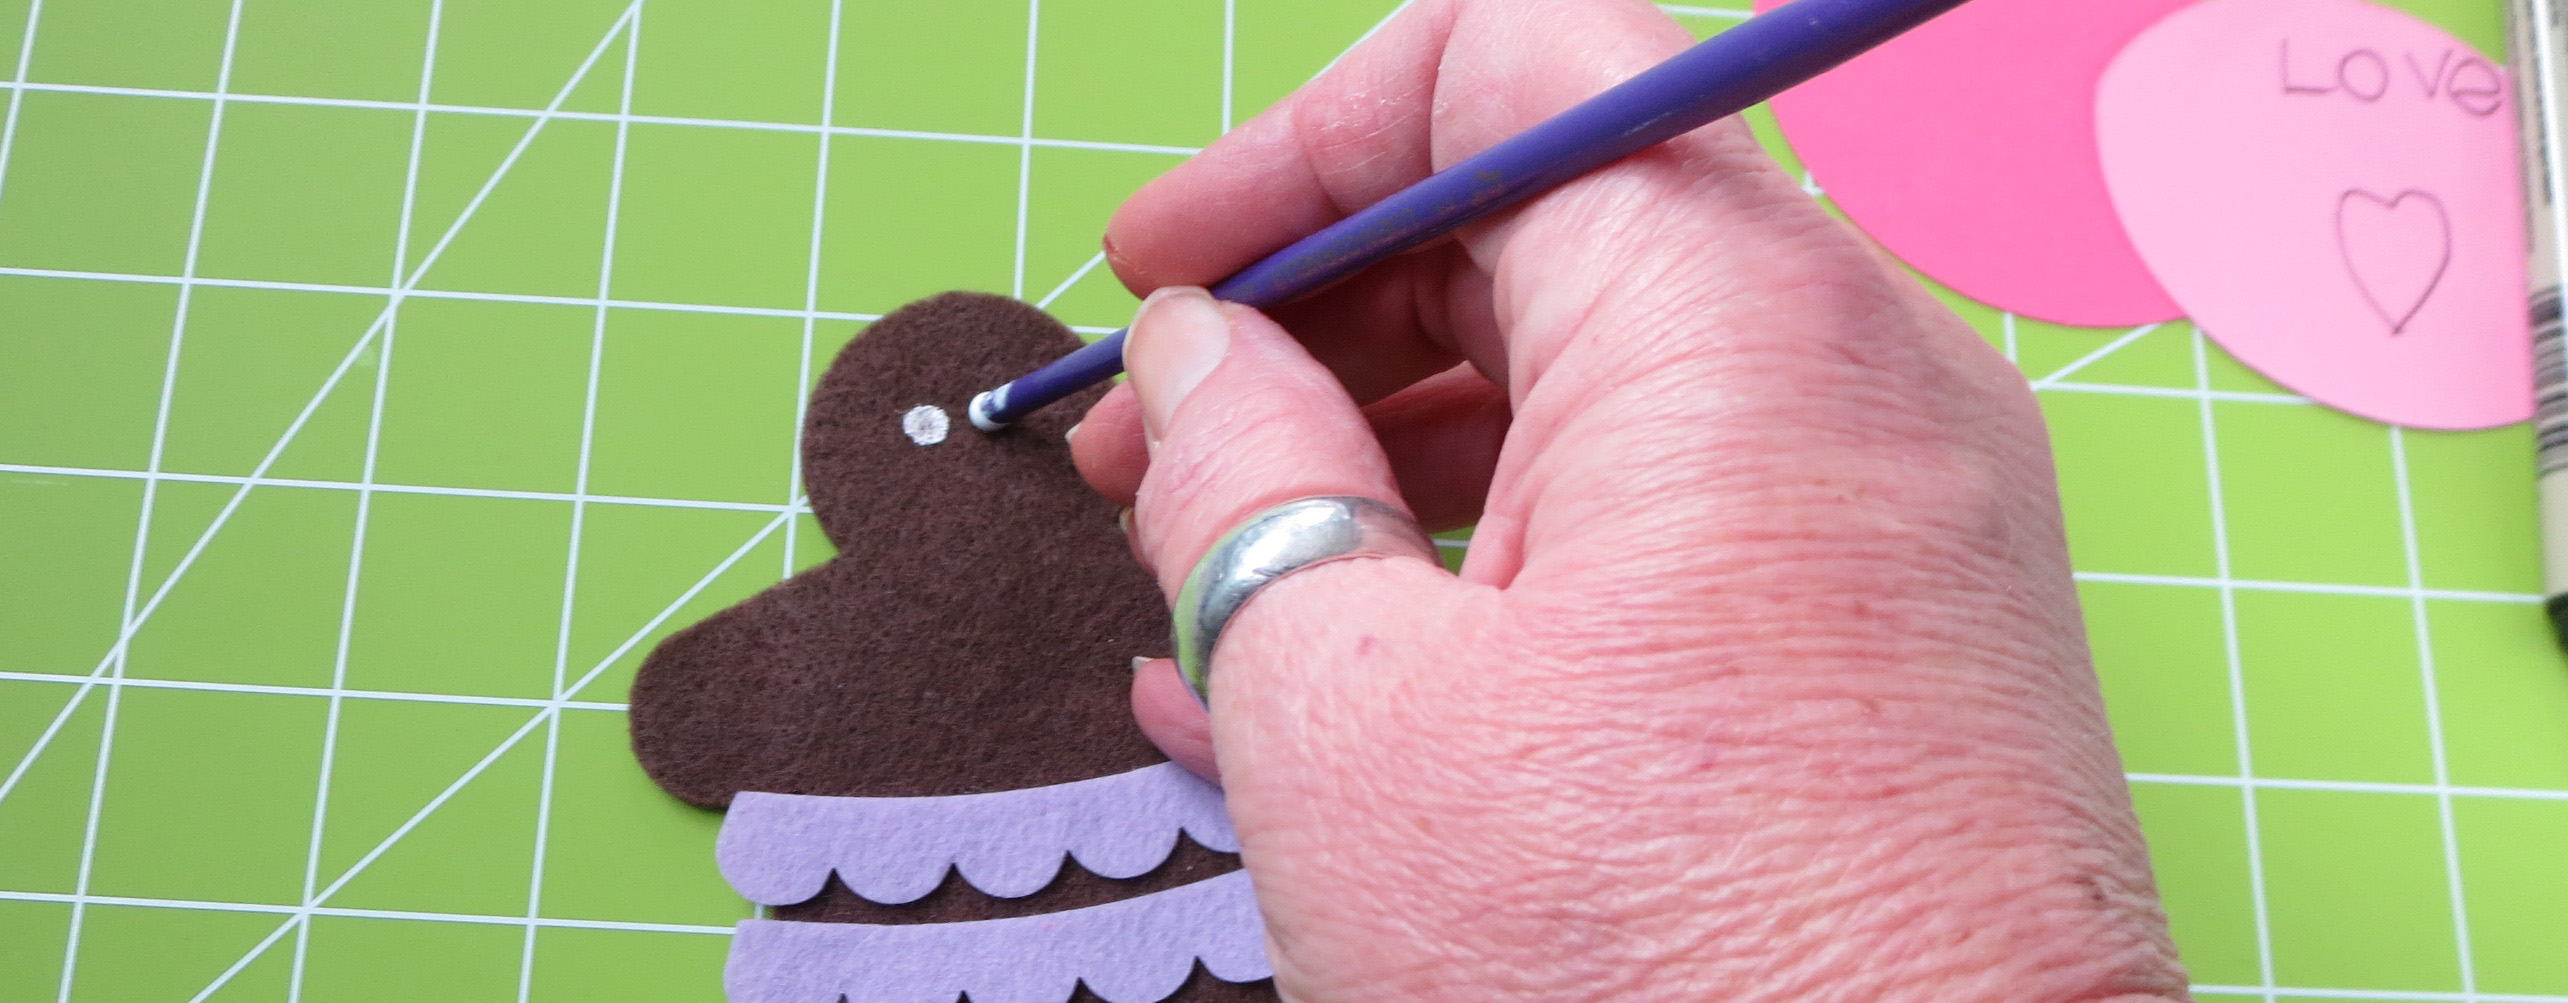 hand painting white eyes on a brown felt gingerbread man with white acrylic paint next to pink paper pieces